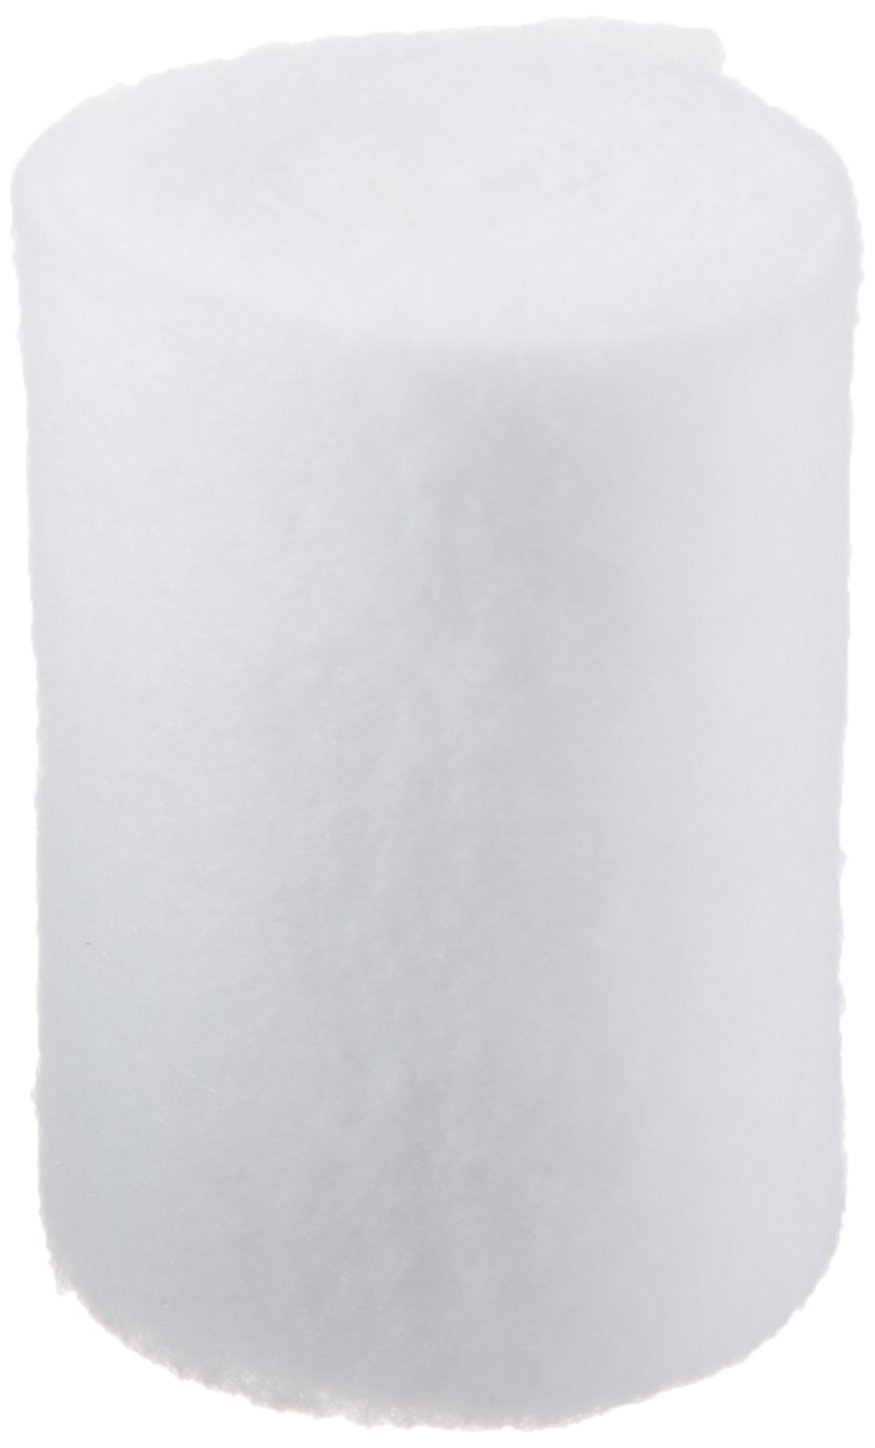 """Rolyan Synthetic Cast Padding, 4"""" Wide, 4 Yards, 12 Rolls, Joint Shaping Wrap, Water Resistant Pre-Casting Wrap for Preventing Skin Maceration, Undercast Padding, Cast Padding, Medical Tape"""